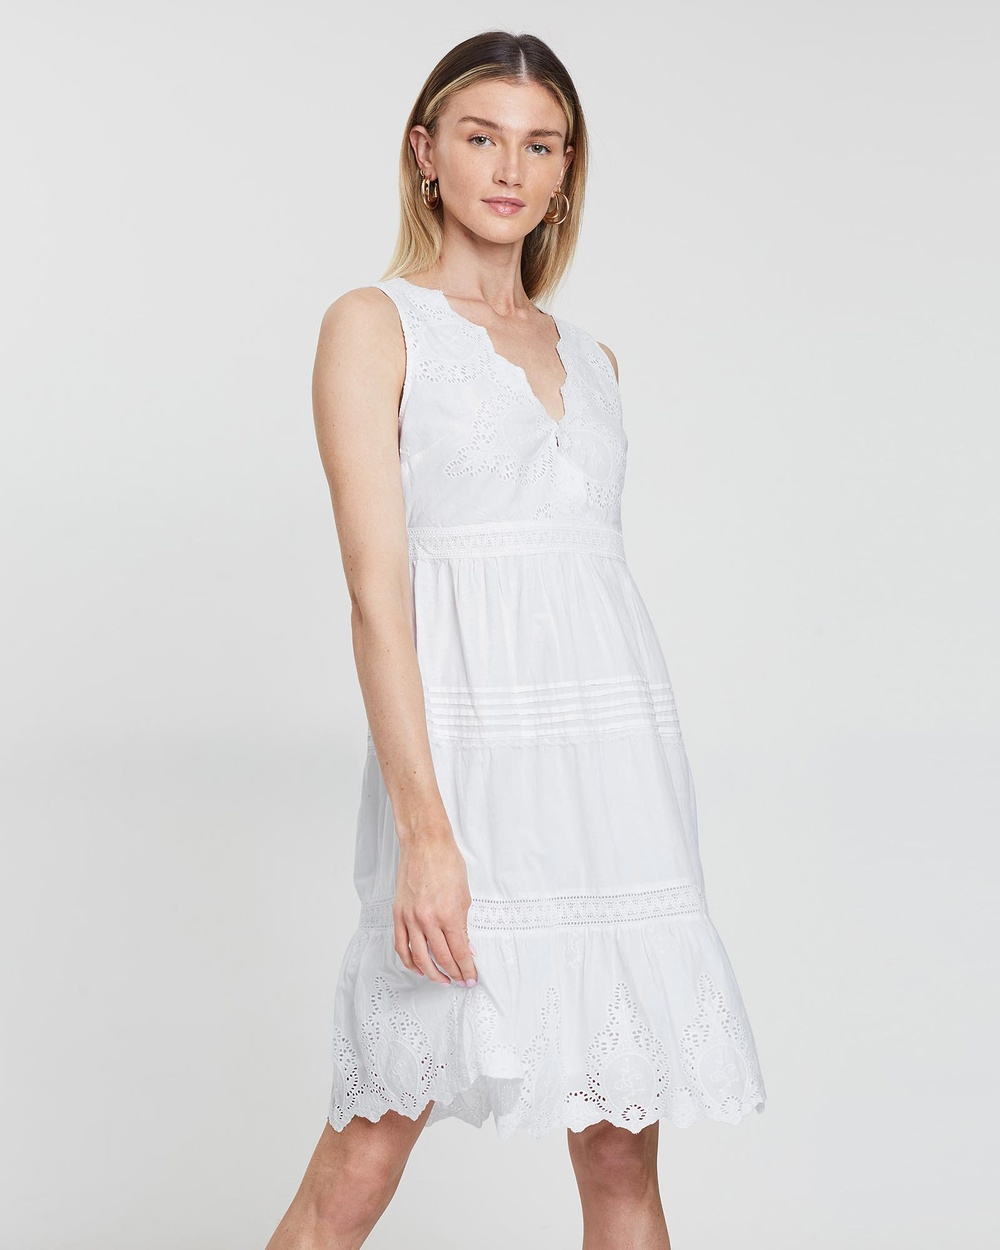 Kaja Clothing White Grace Dress